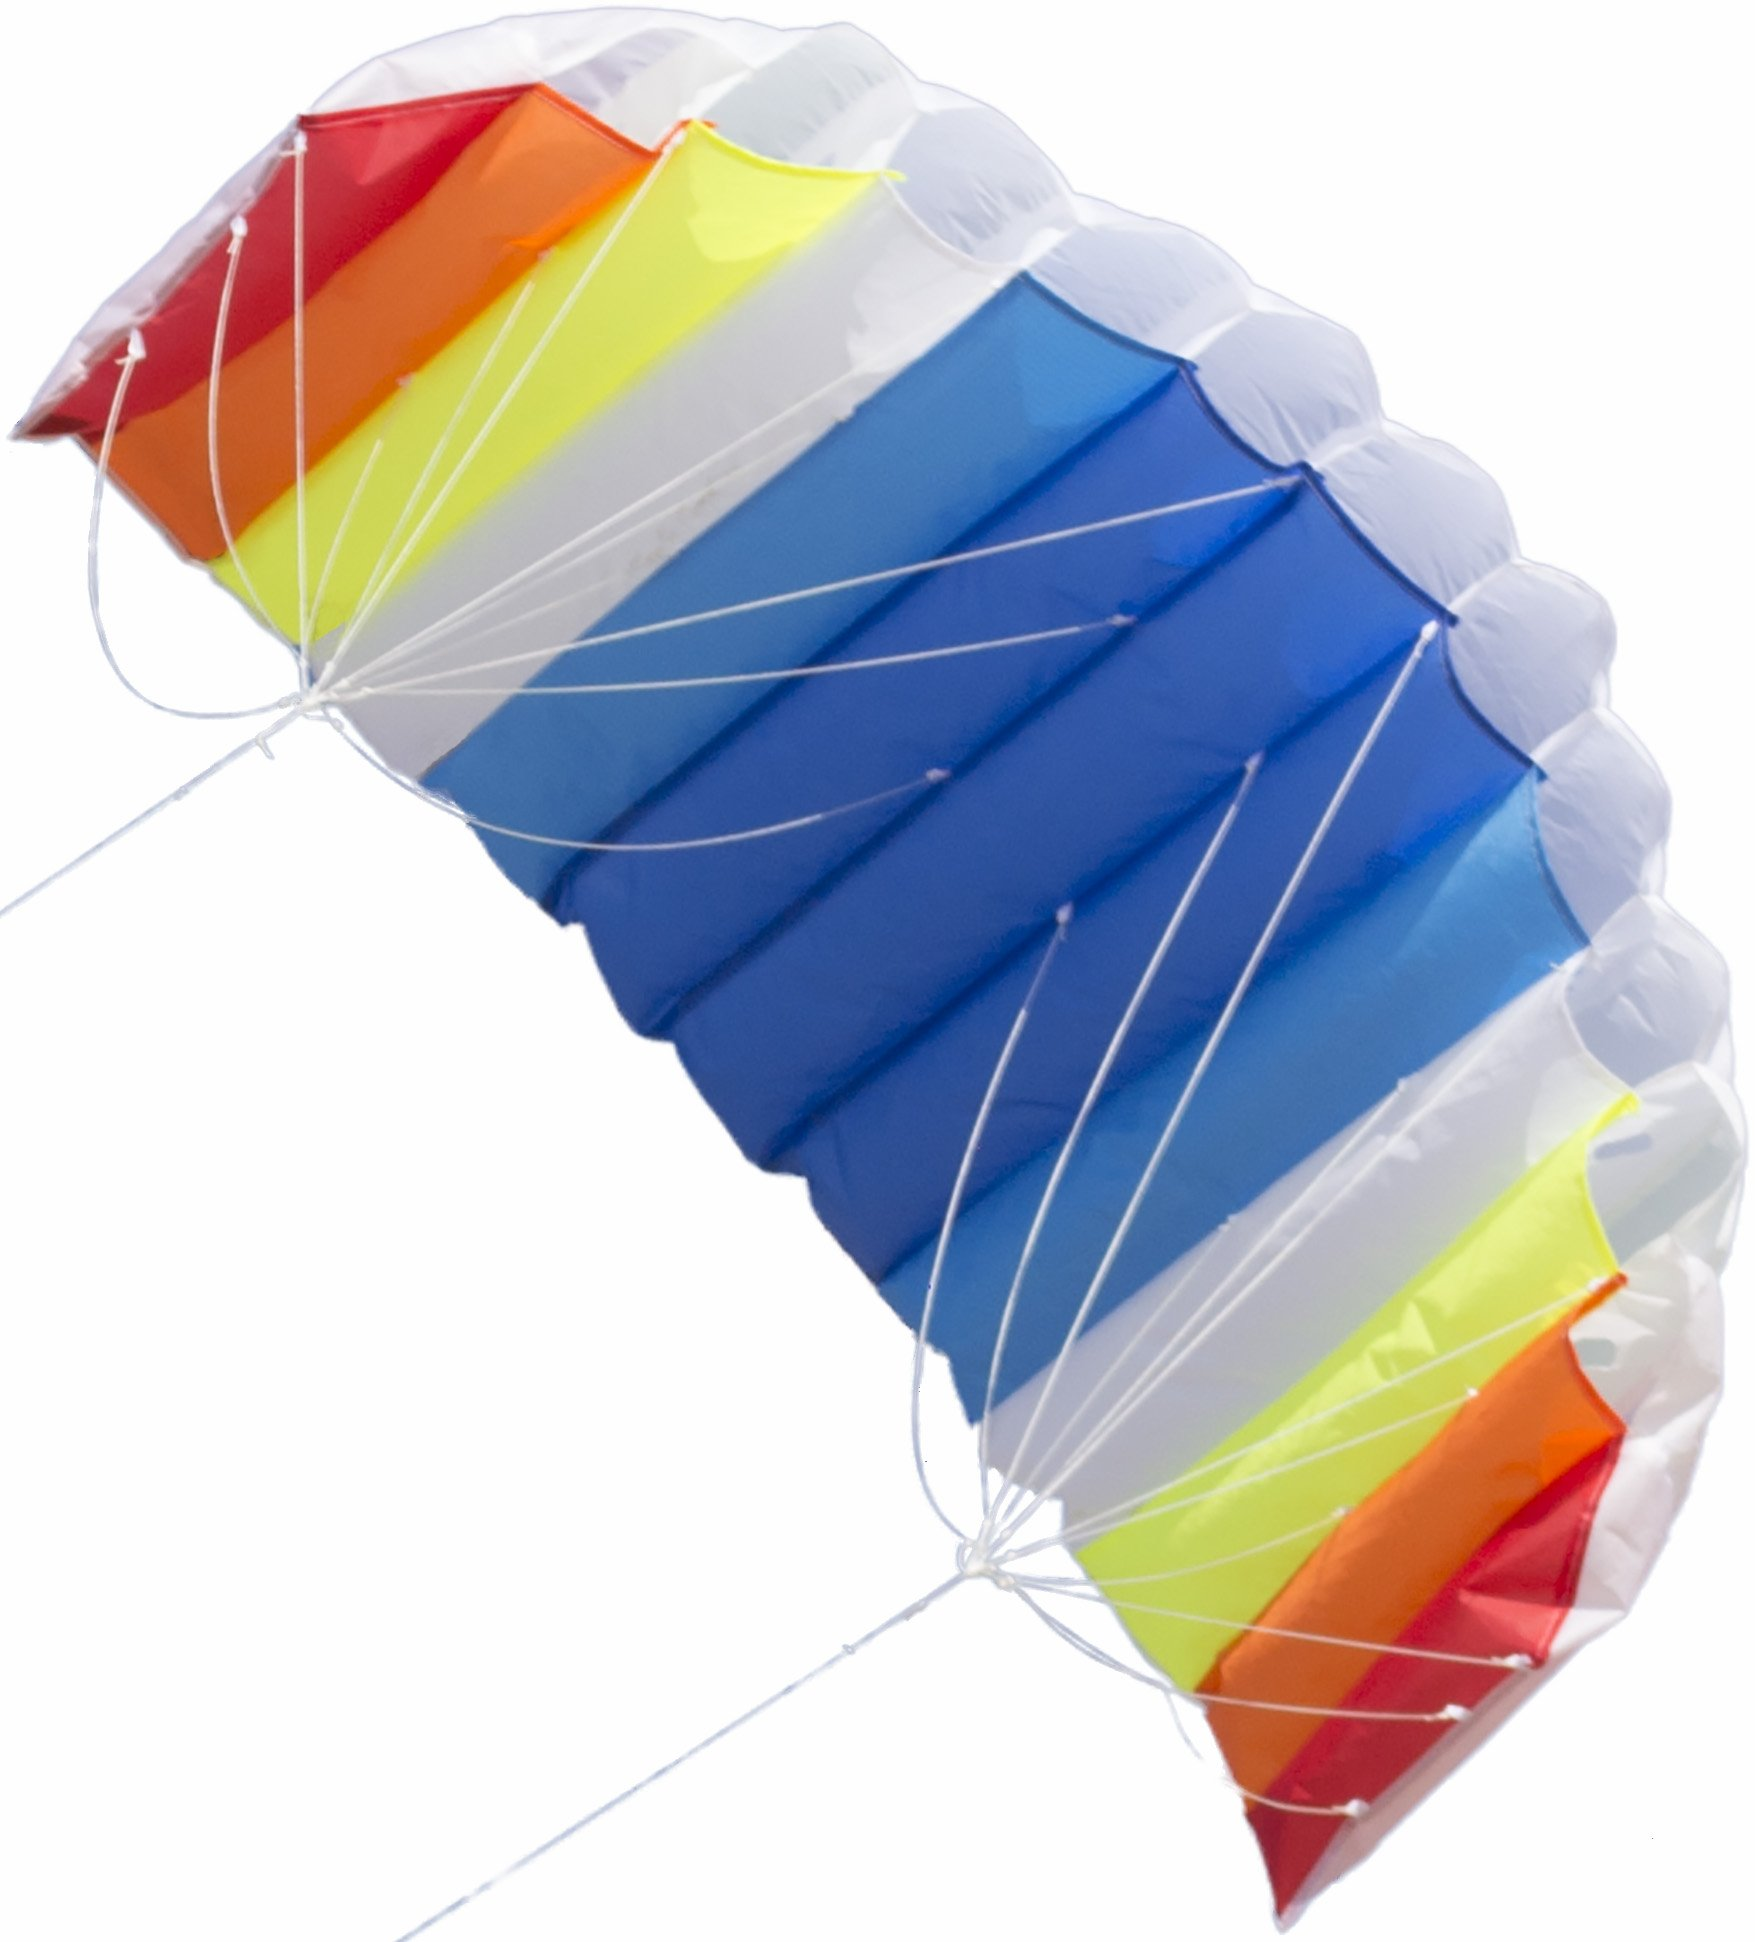 AIRFOIL STUNT SPORT KITE Dual-Line with Strings, Handles, Carry Bag, Winder, FREE Flying Tips eBook, Easy Assembly by Moon Glow Sports by Moon Glow Sports